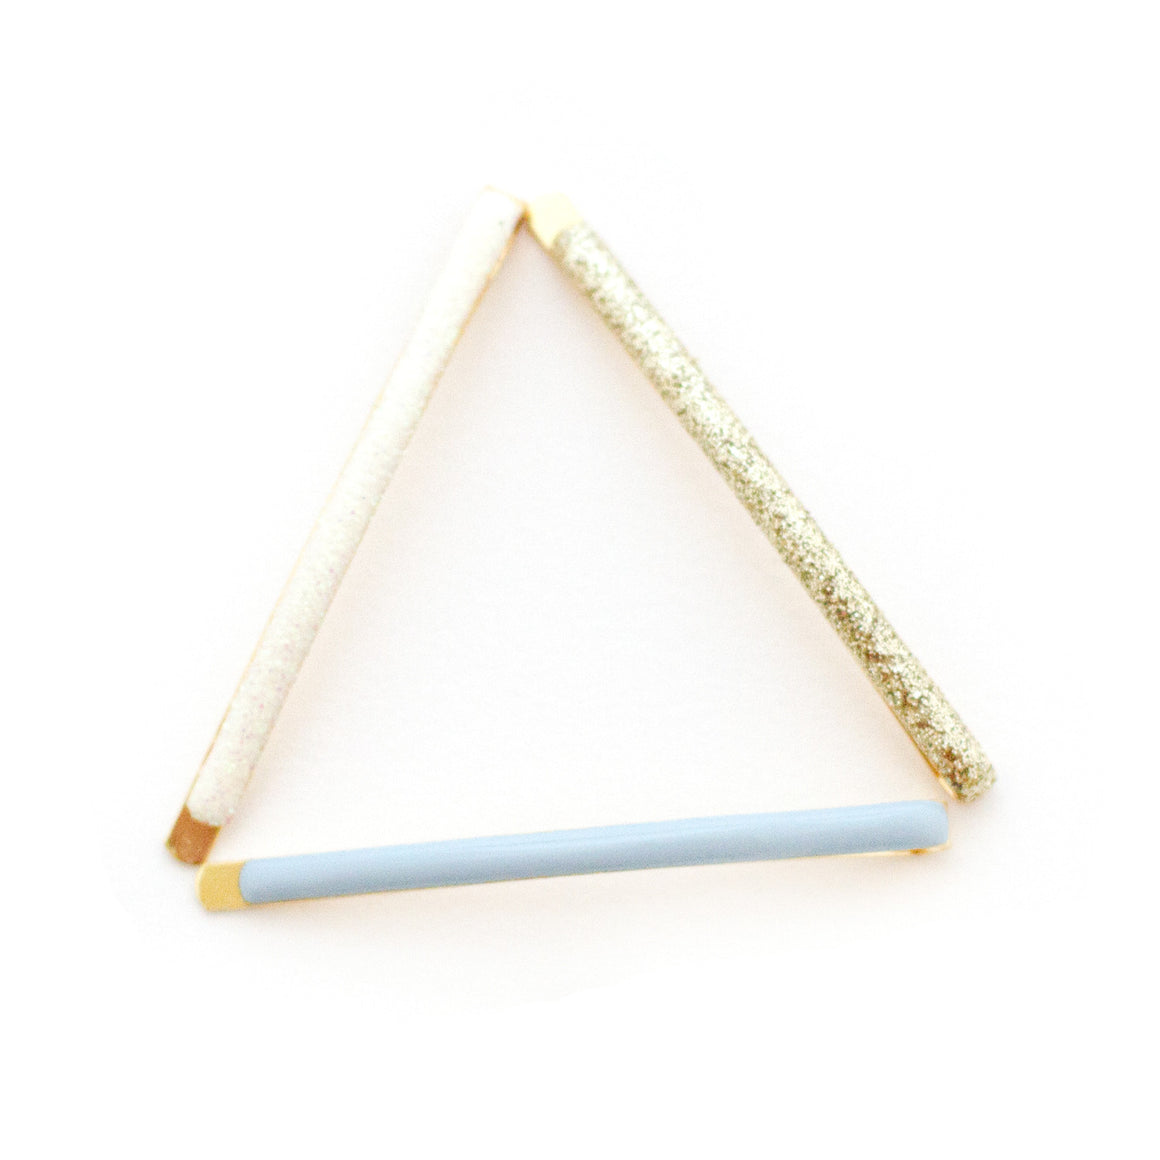 the dream date bobby pin package features gold iridescent and blue enamel glitter hair pins